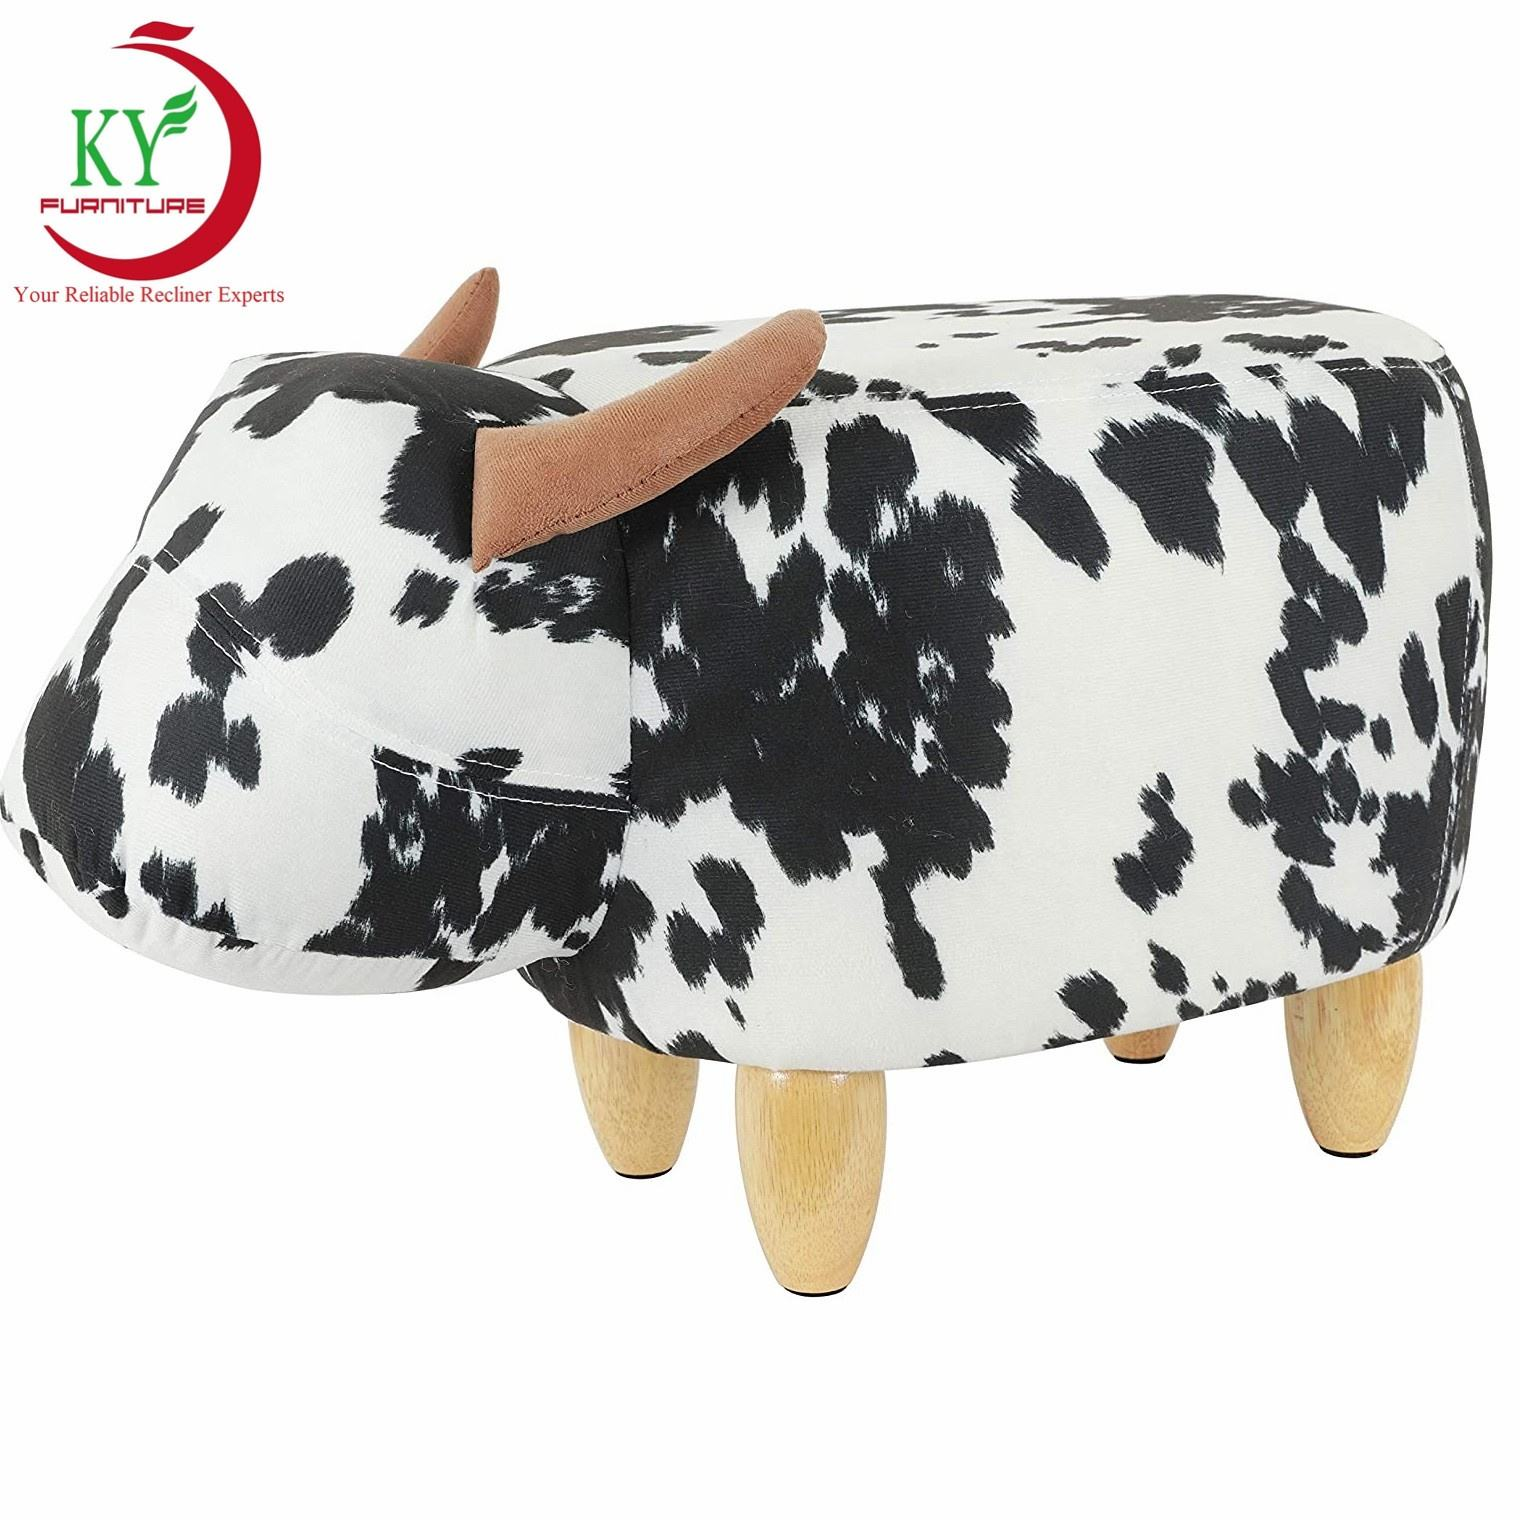 JKY Furniture Living Room Ottoman Footstool Cute Animal Upholstered Stool For Kids